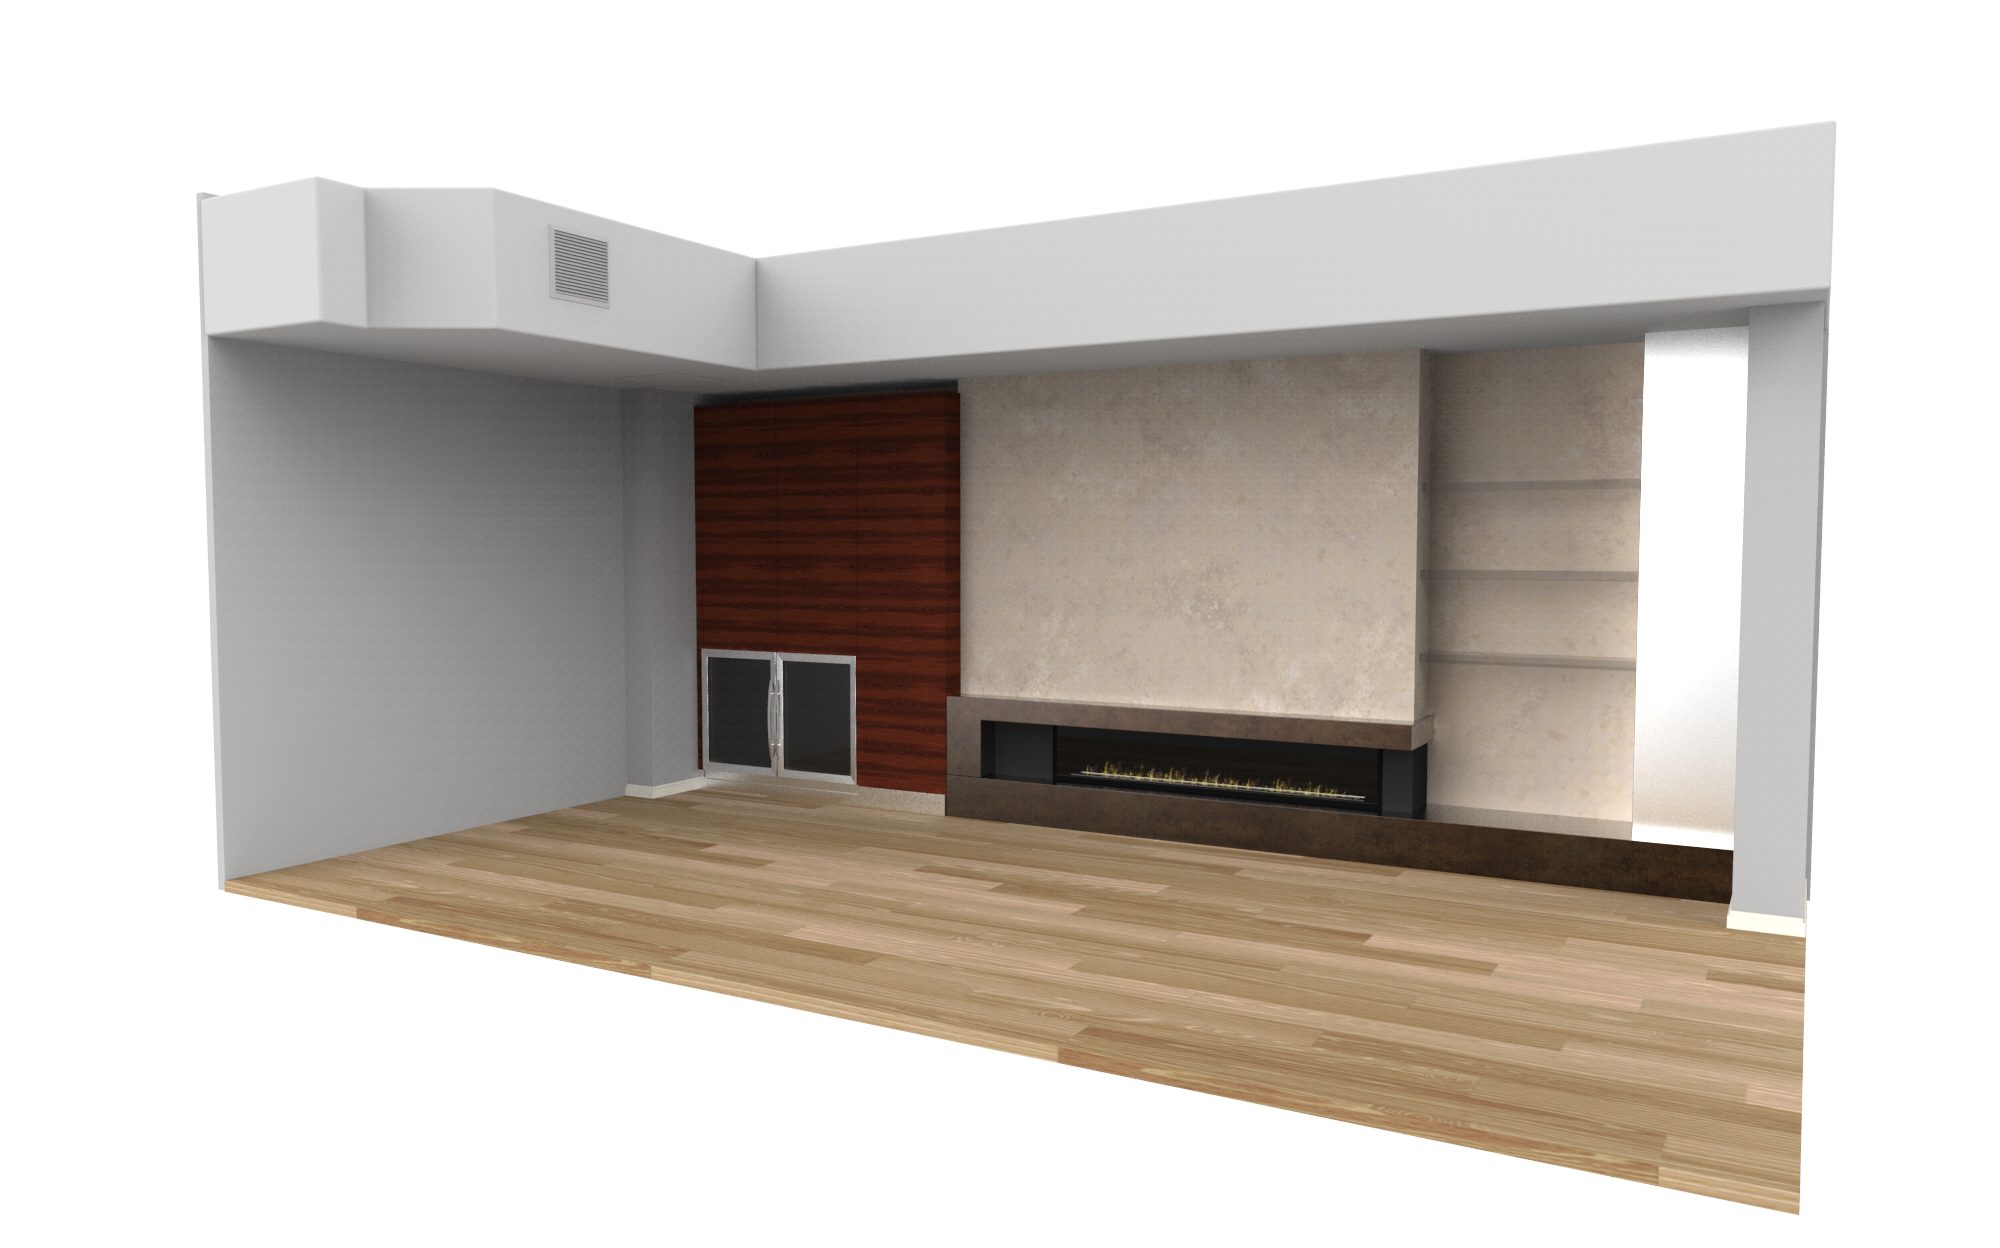 Project | Fireplace